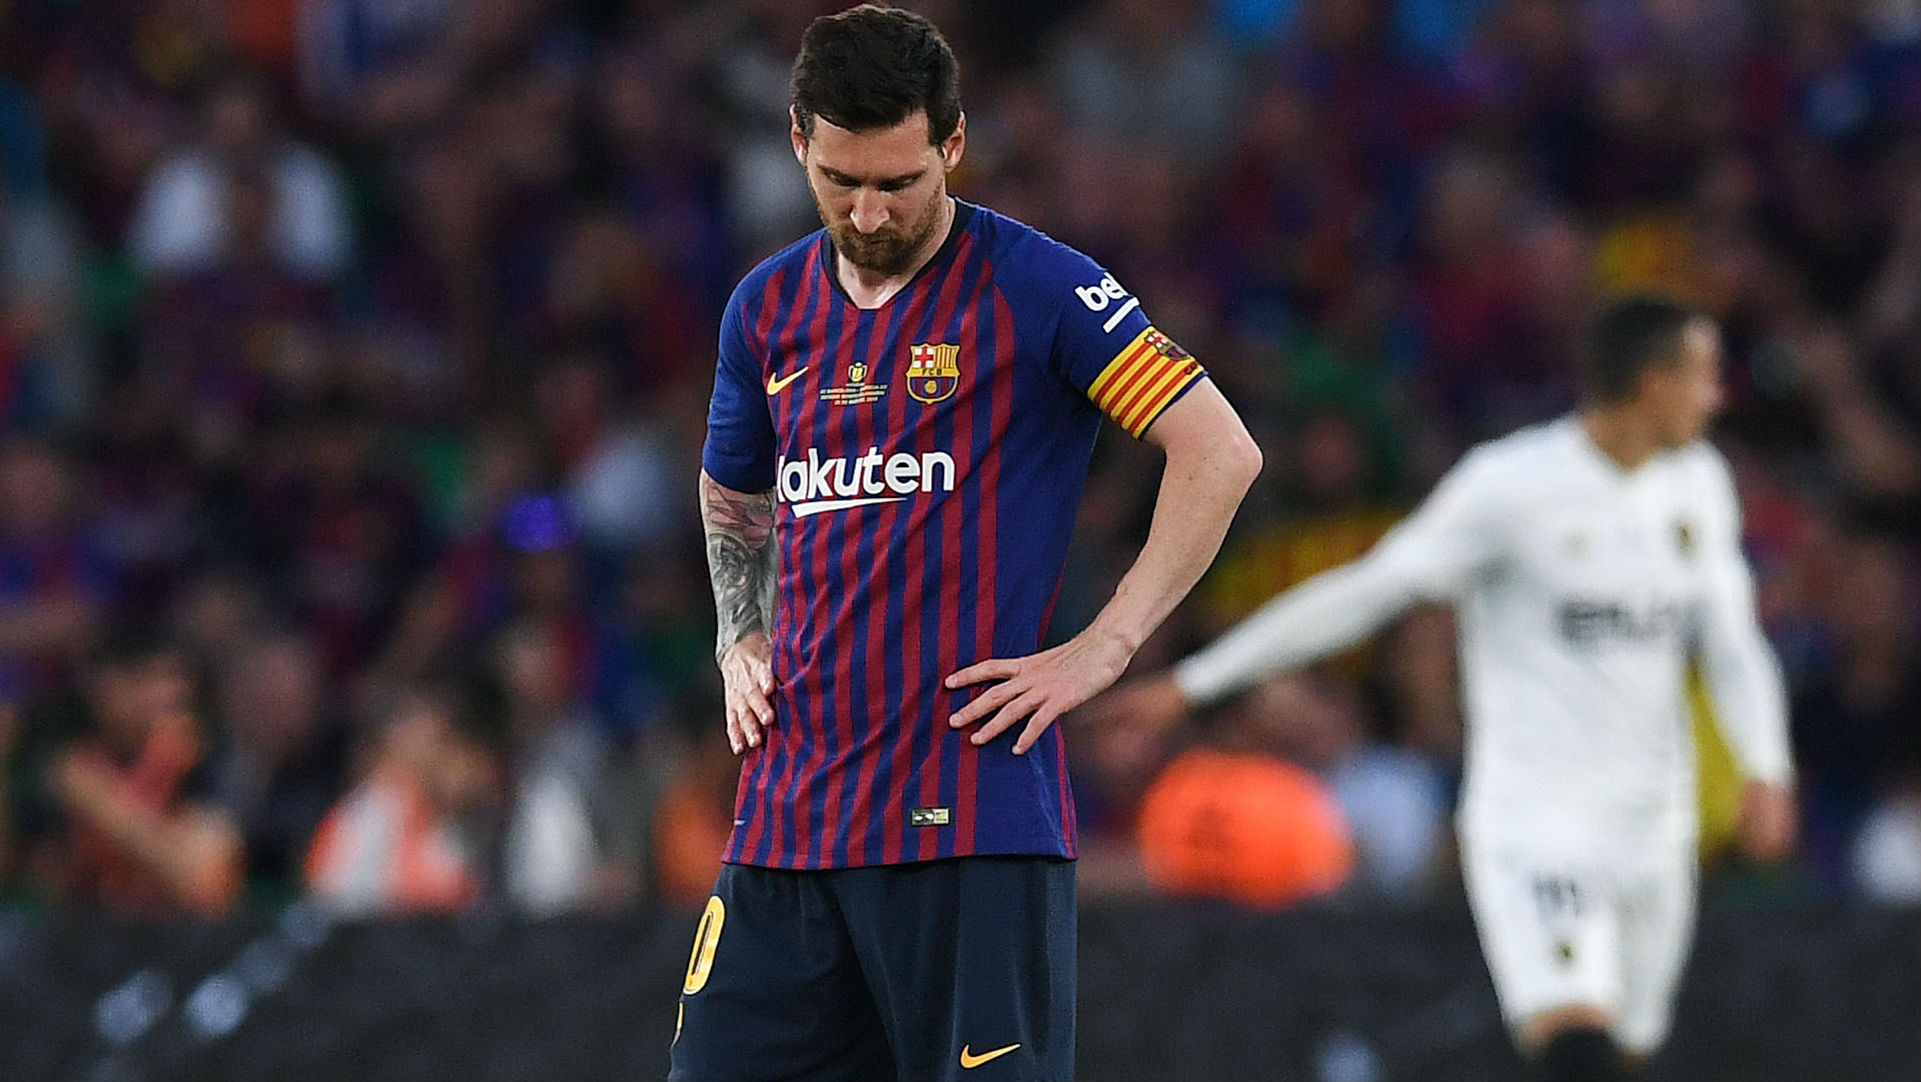 'Why doesn't he win in Europe?' - Van Gaal blames Messi for Barcelona's Champions League failures